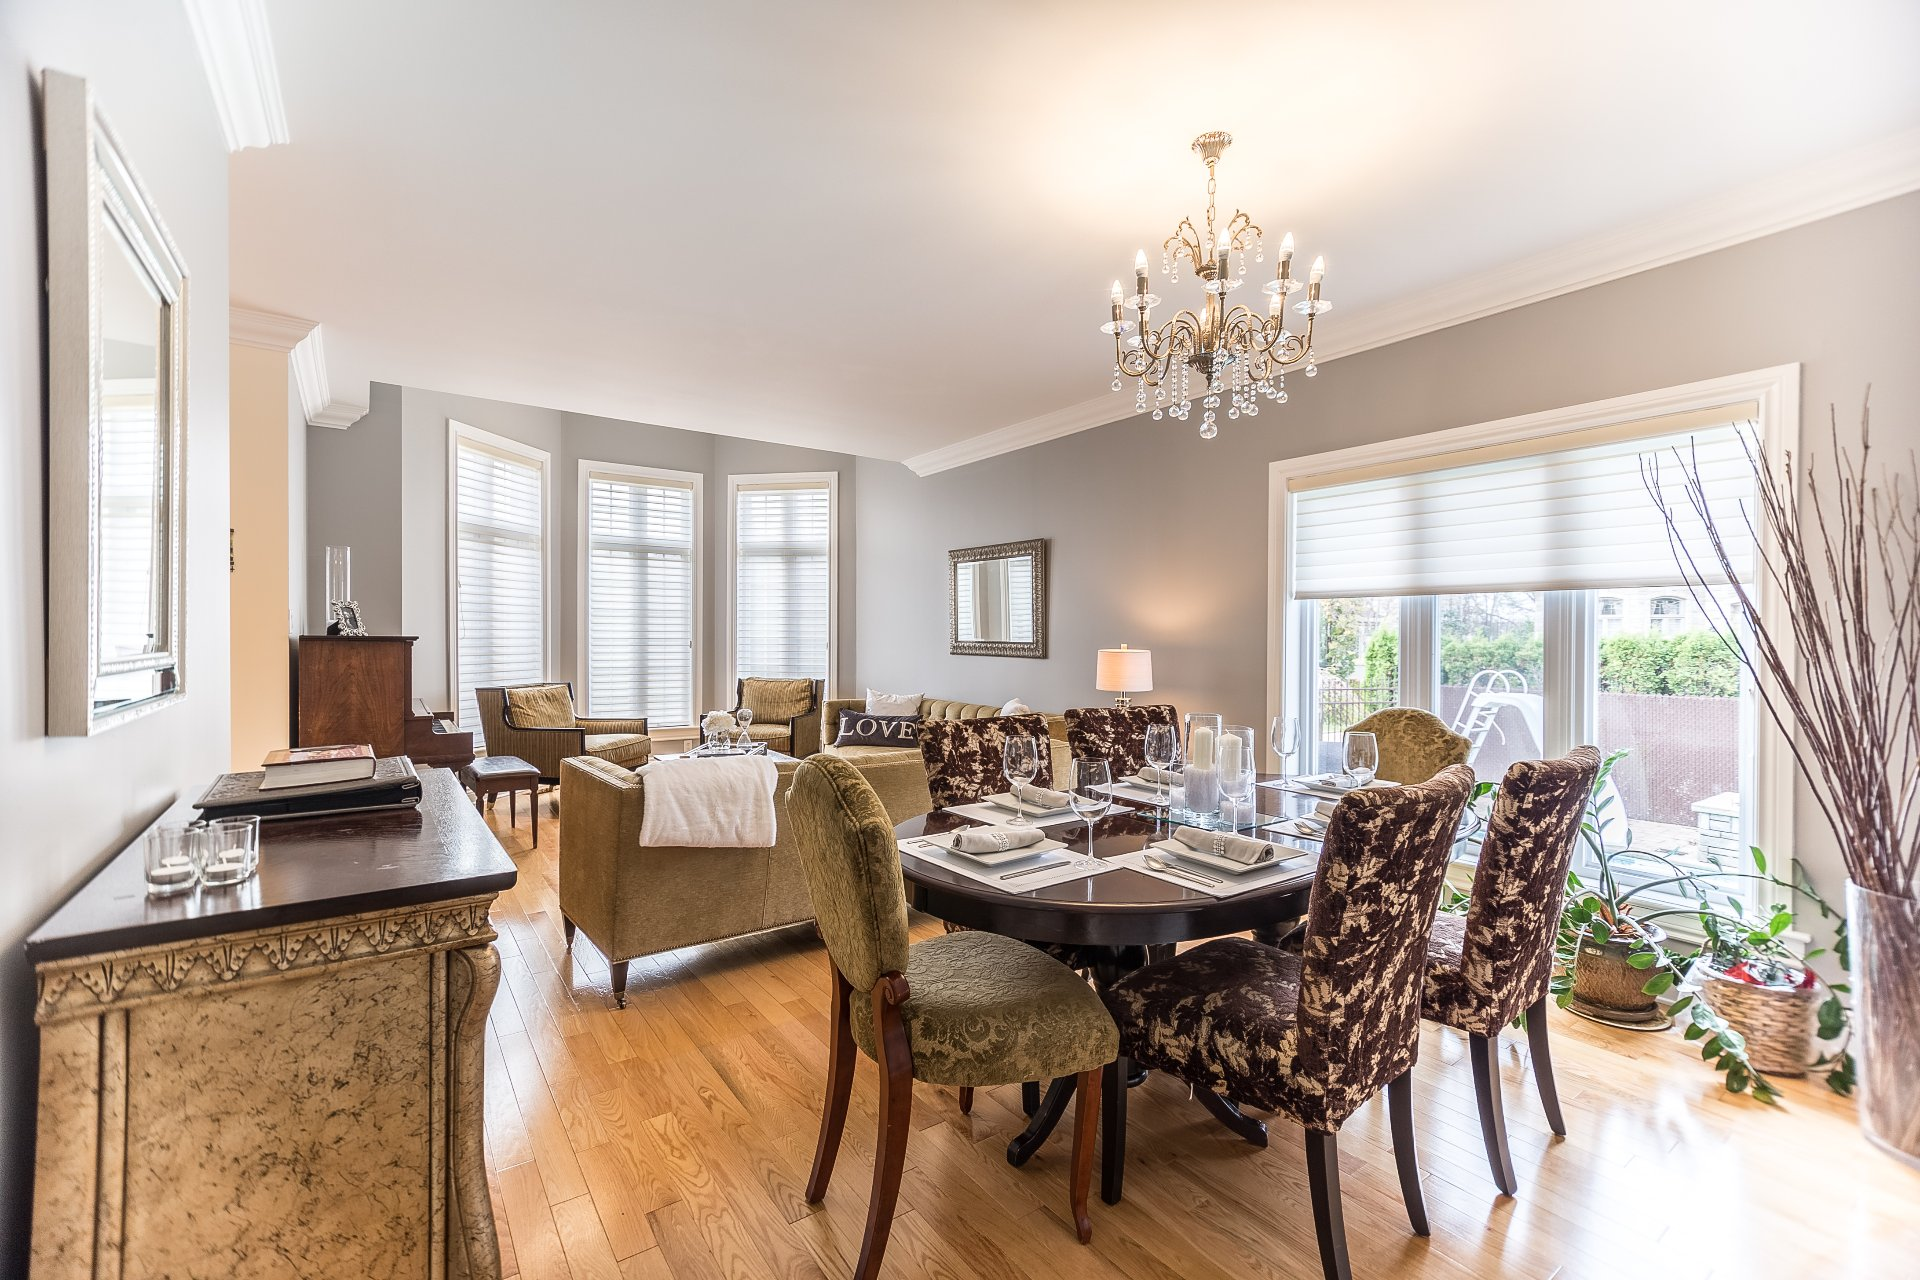 Maison tages vendre pierrefonds roxboro montreal for Acheter maison montreal